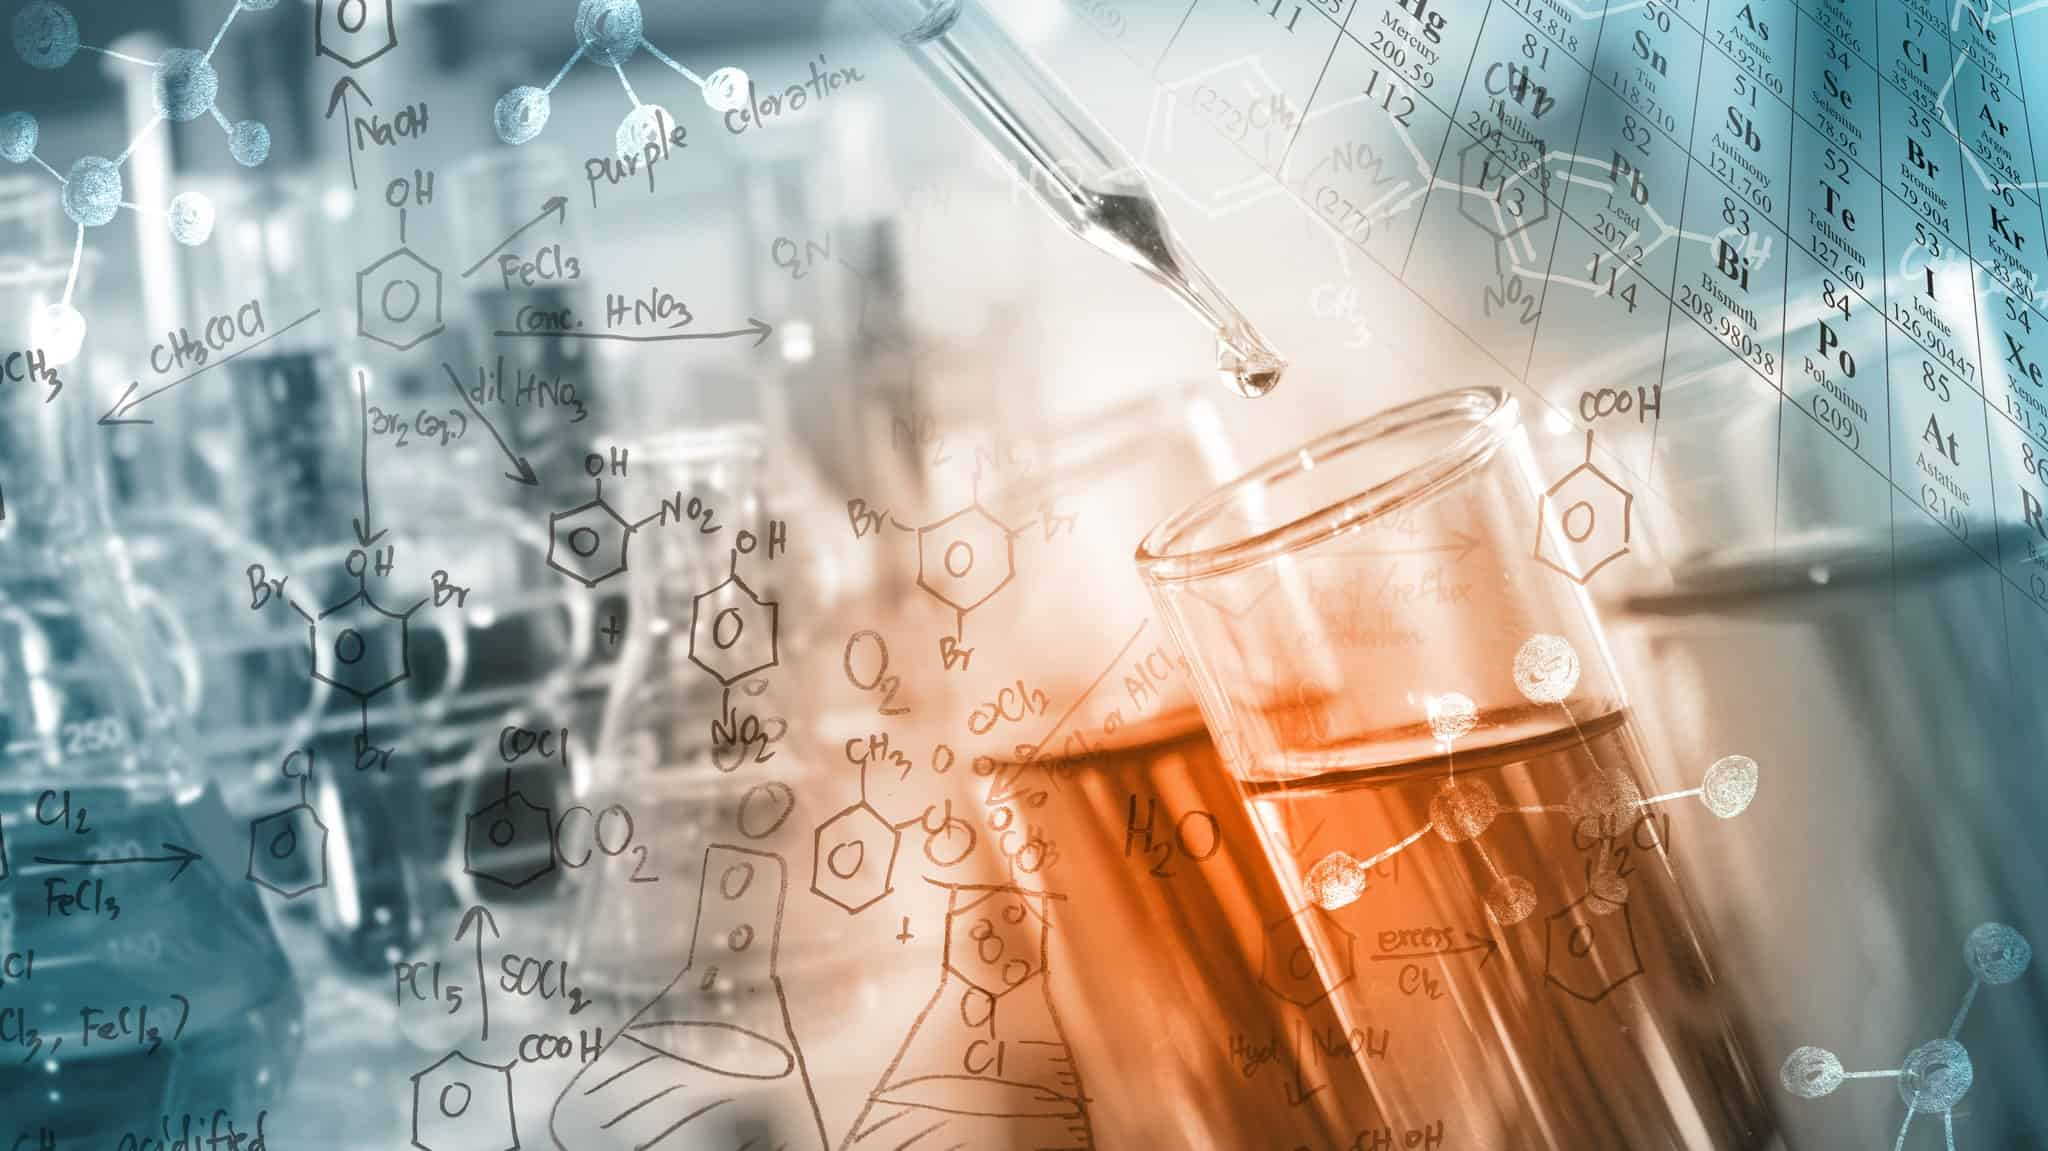 researcher dropping the clear reagent into test tube with periodic table and chemical equations background, for reaction testing in chemical laboratory.